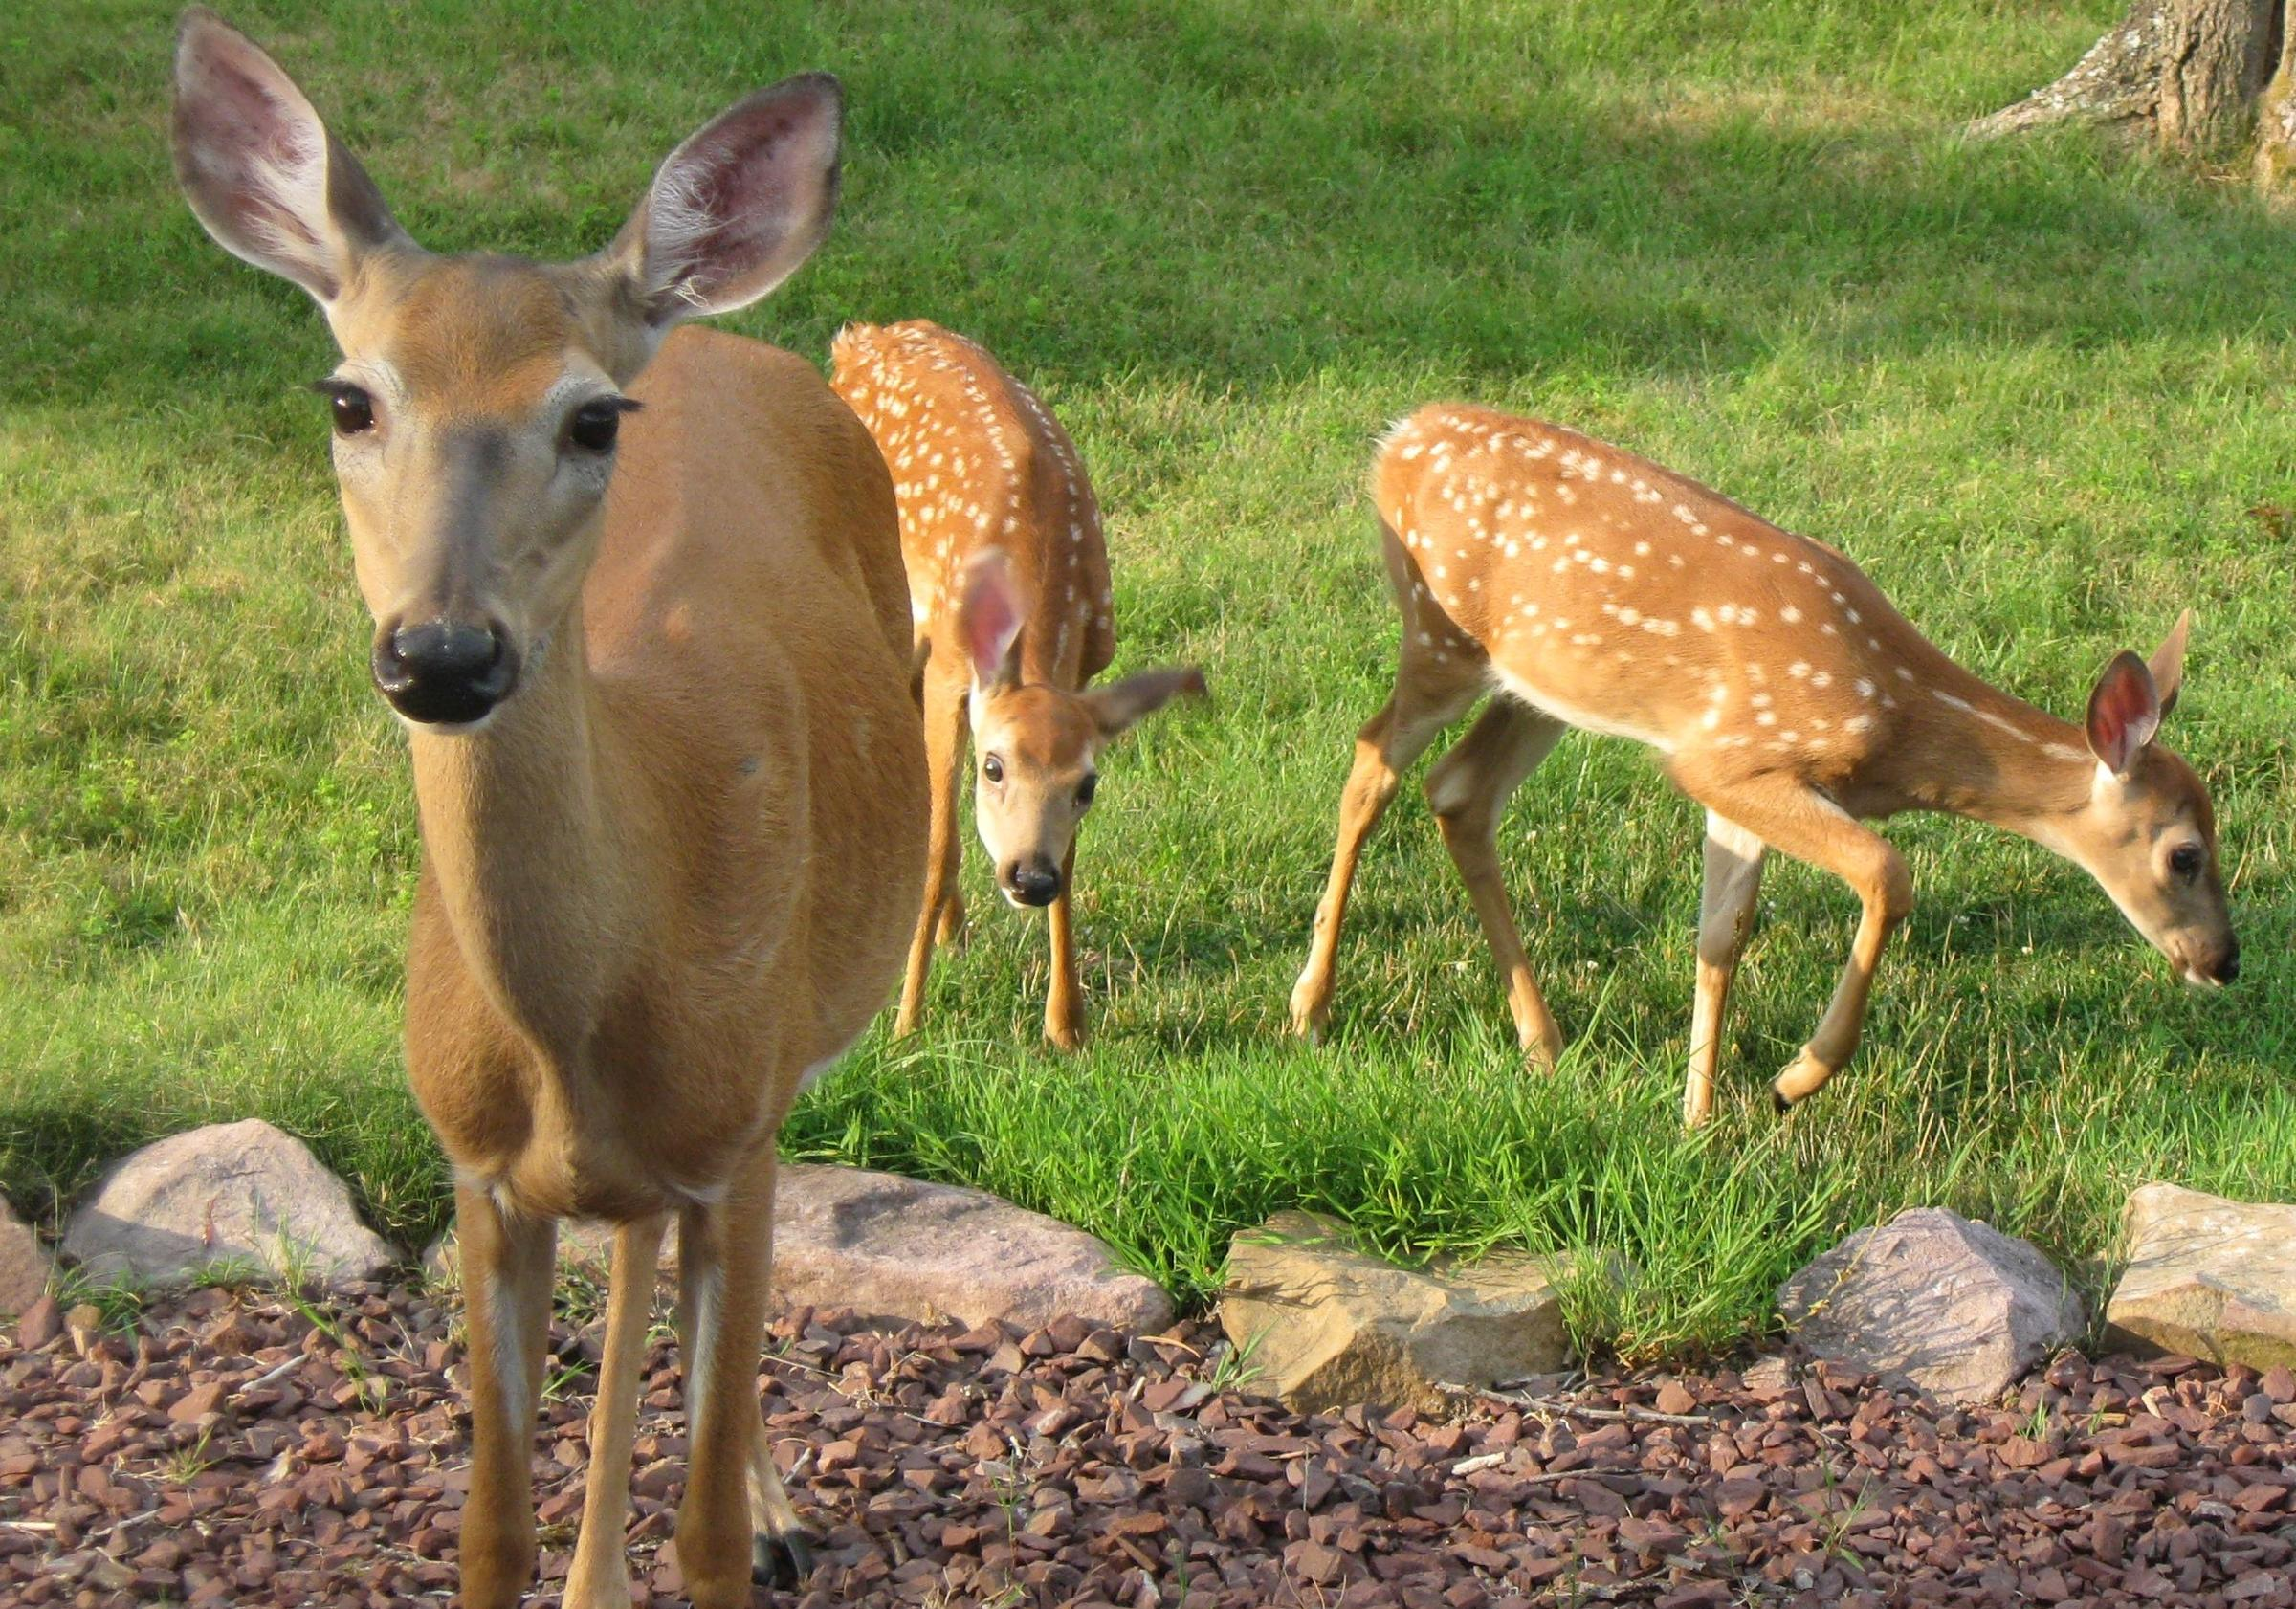 Granite Geek: Whatu0027s The Best Way To Keep Deer Out Of Your Garden?